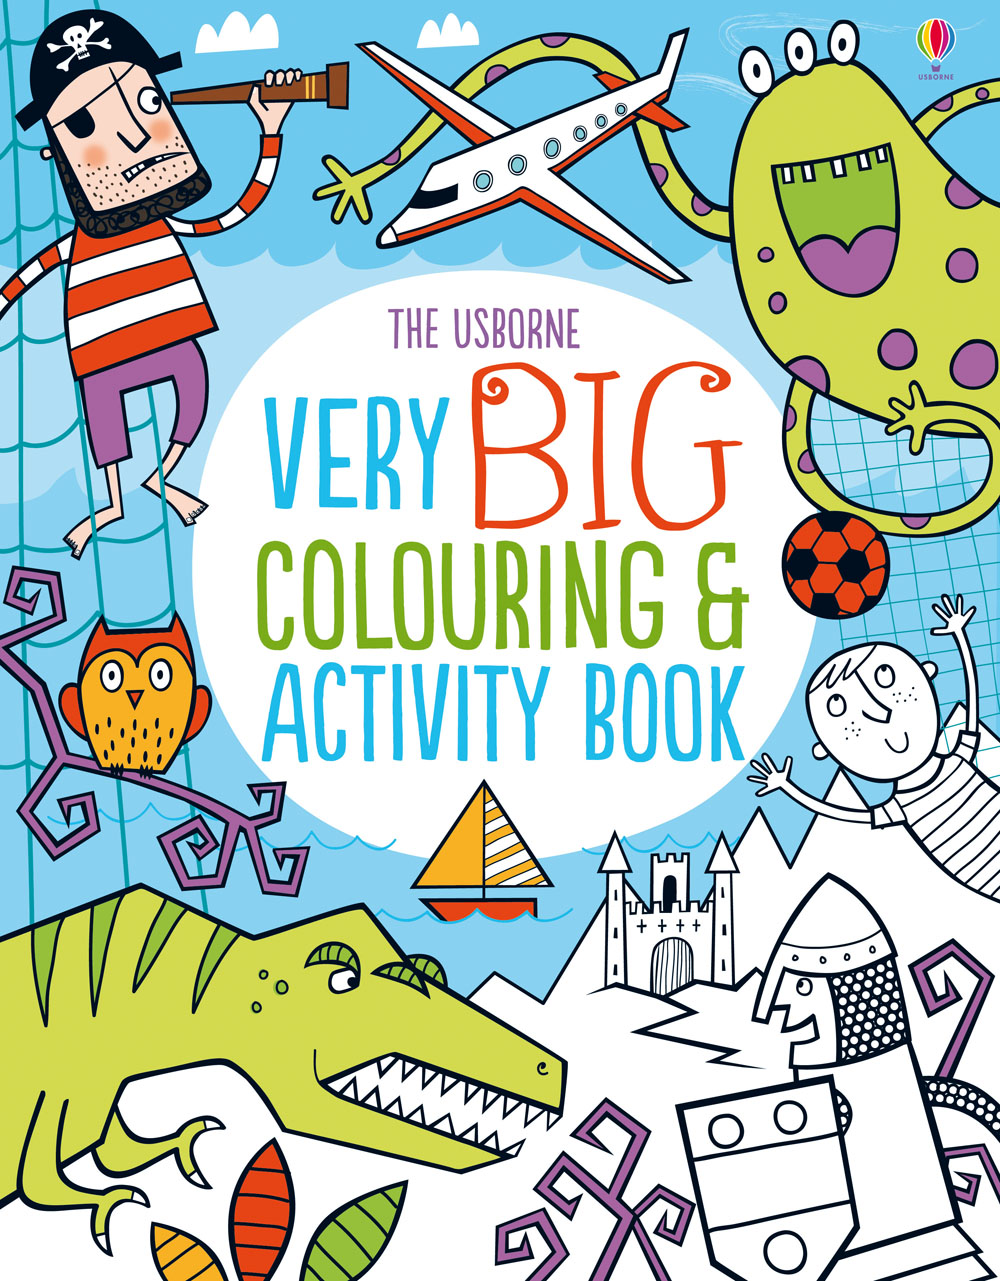 Comfortable Brain Coloring Page Huge Amazon Coloring Books Solid Color Theory Books Naruto Coloring Book Young Doodle Coloring Book BrightAbstract Coloring Books Very Big Colouring And Activity Book\u201d At Usborne Books At Home